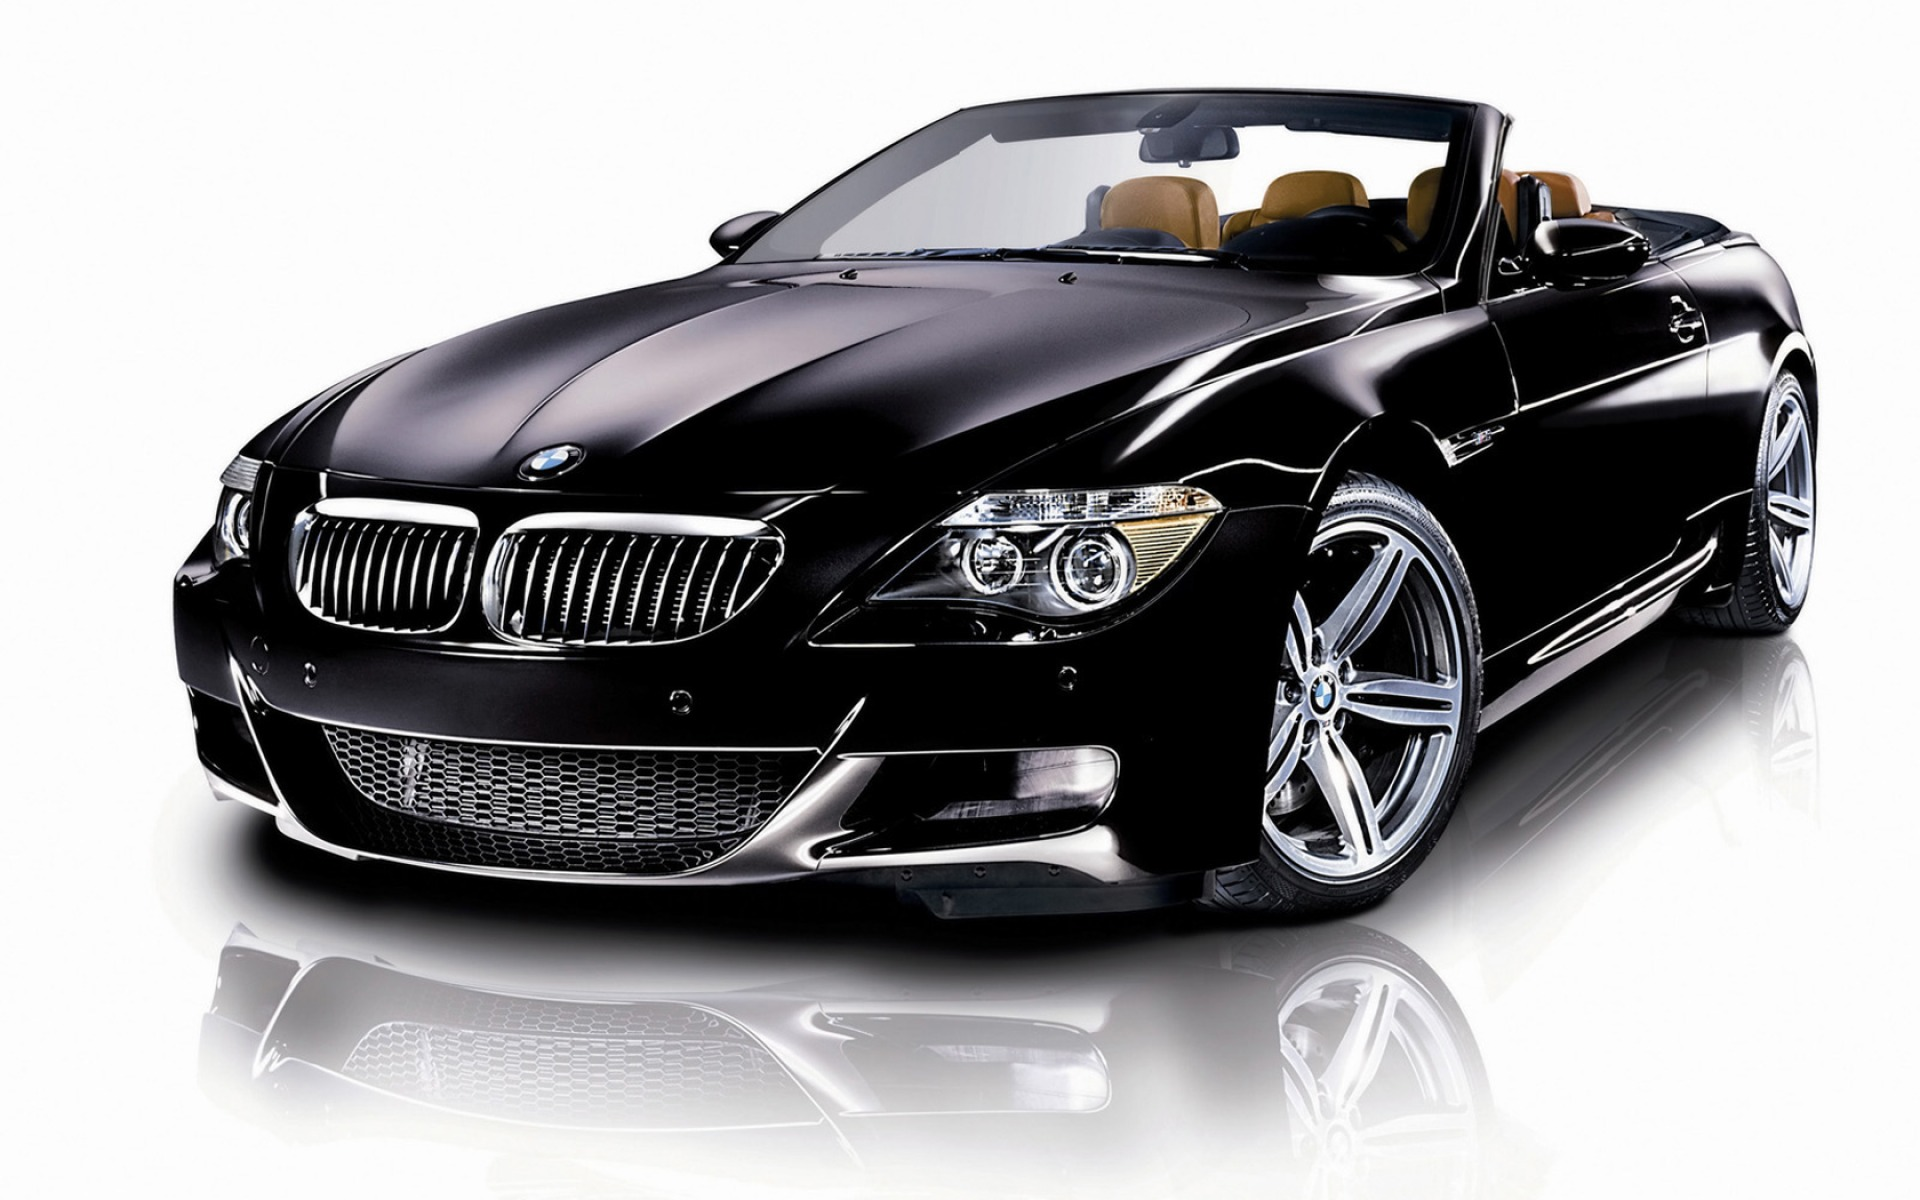 Ultrablogus  Nice Bmw Car Wallpaper Wallpapers For Free Download About   With Luxury Bmw M Convertible Wallpaper Bmw Cars With Breathtaking Nissan Zx Twin Turbo Interior Also  Mustang Interior In Addition Cadillac Allante Interior And Interior Dome Lights For Cars As Well As Range Interior Color Additionally Mga Interior From Allfreedownloadcom With Ultrablogus  Luxury Bmw Car Wallpaper Wallpapers For Free Download About   With Breathtaking Bmw M Convertible Wallpaper Bmw Cars And Nice Nissan Zx Twin Turbo Interior Also  Mustang Interior In Addition Cadillac Allante Interior From Allfreedownloadcom